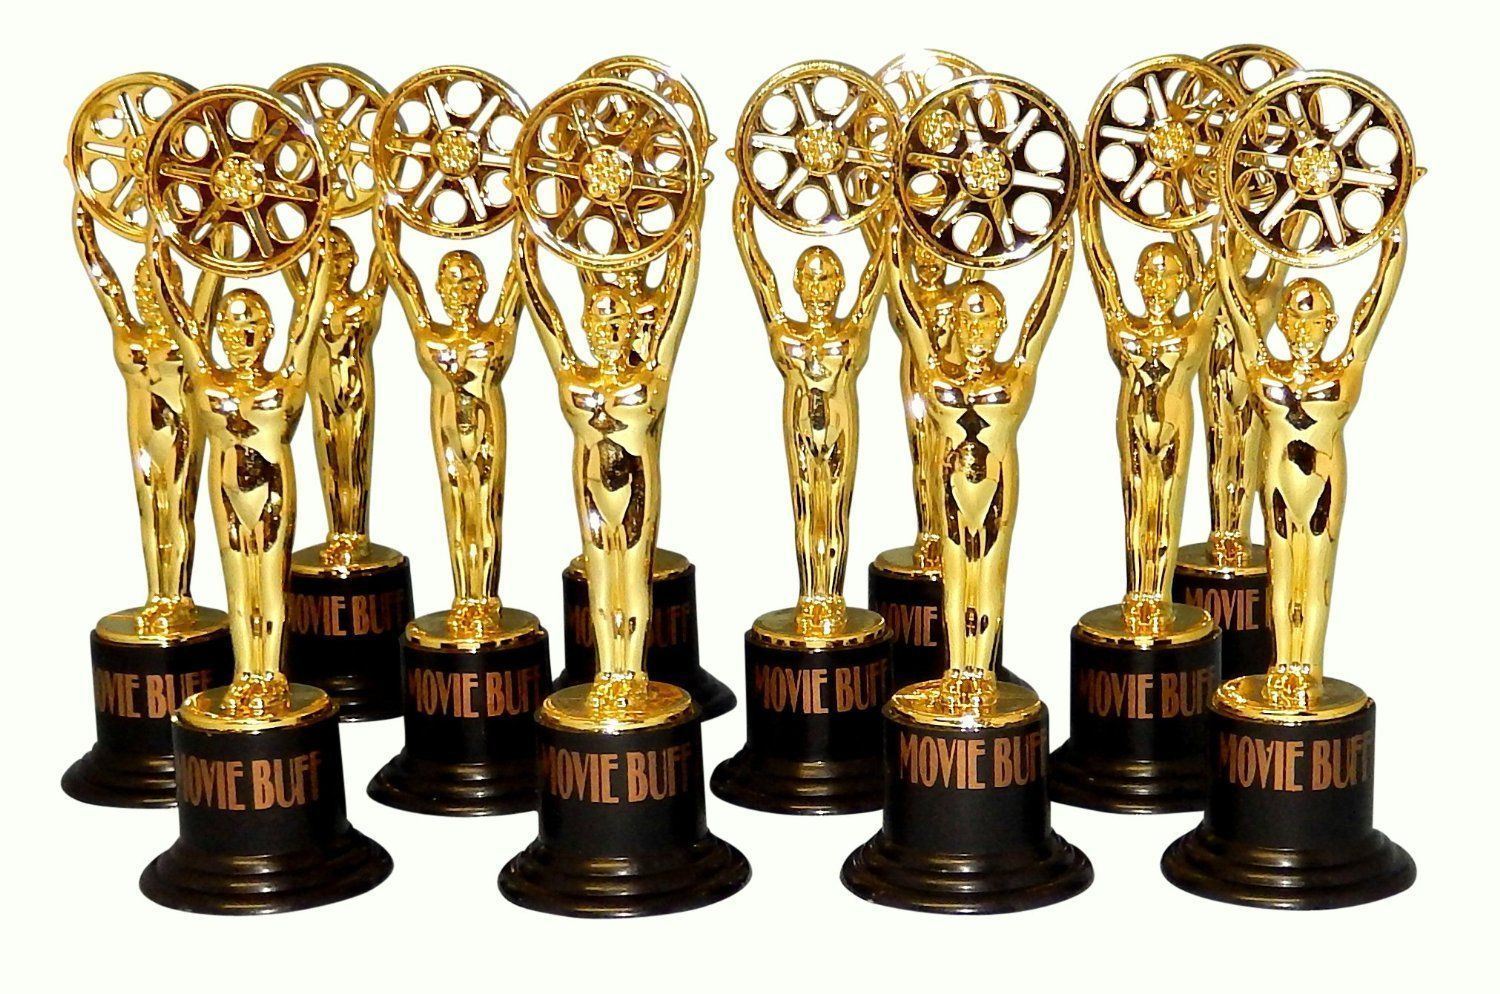 6 HOLLYWOOD PARTY MOVIE FILM SHOOTING STAR AWARD TROPHY PROM TABLE DECORATION